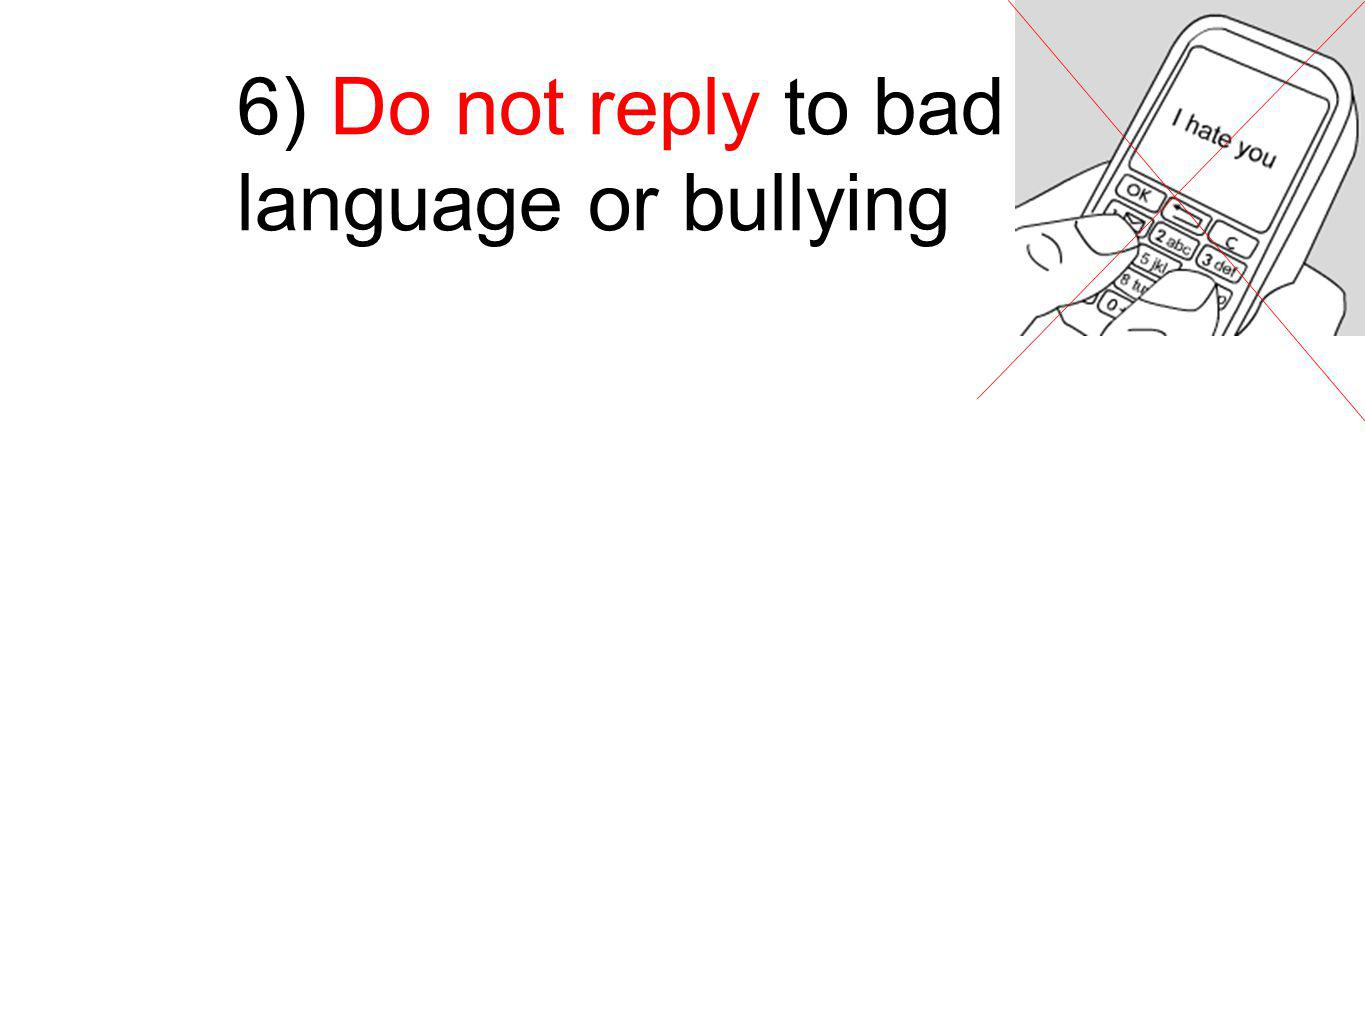 6) Do not reply to bad language or bullying